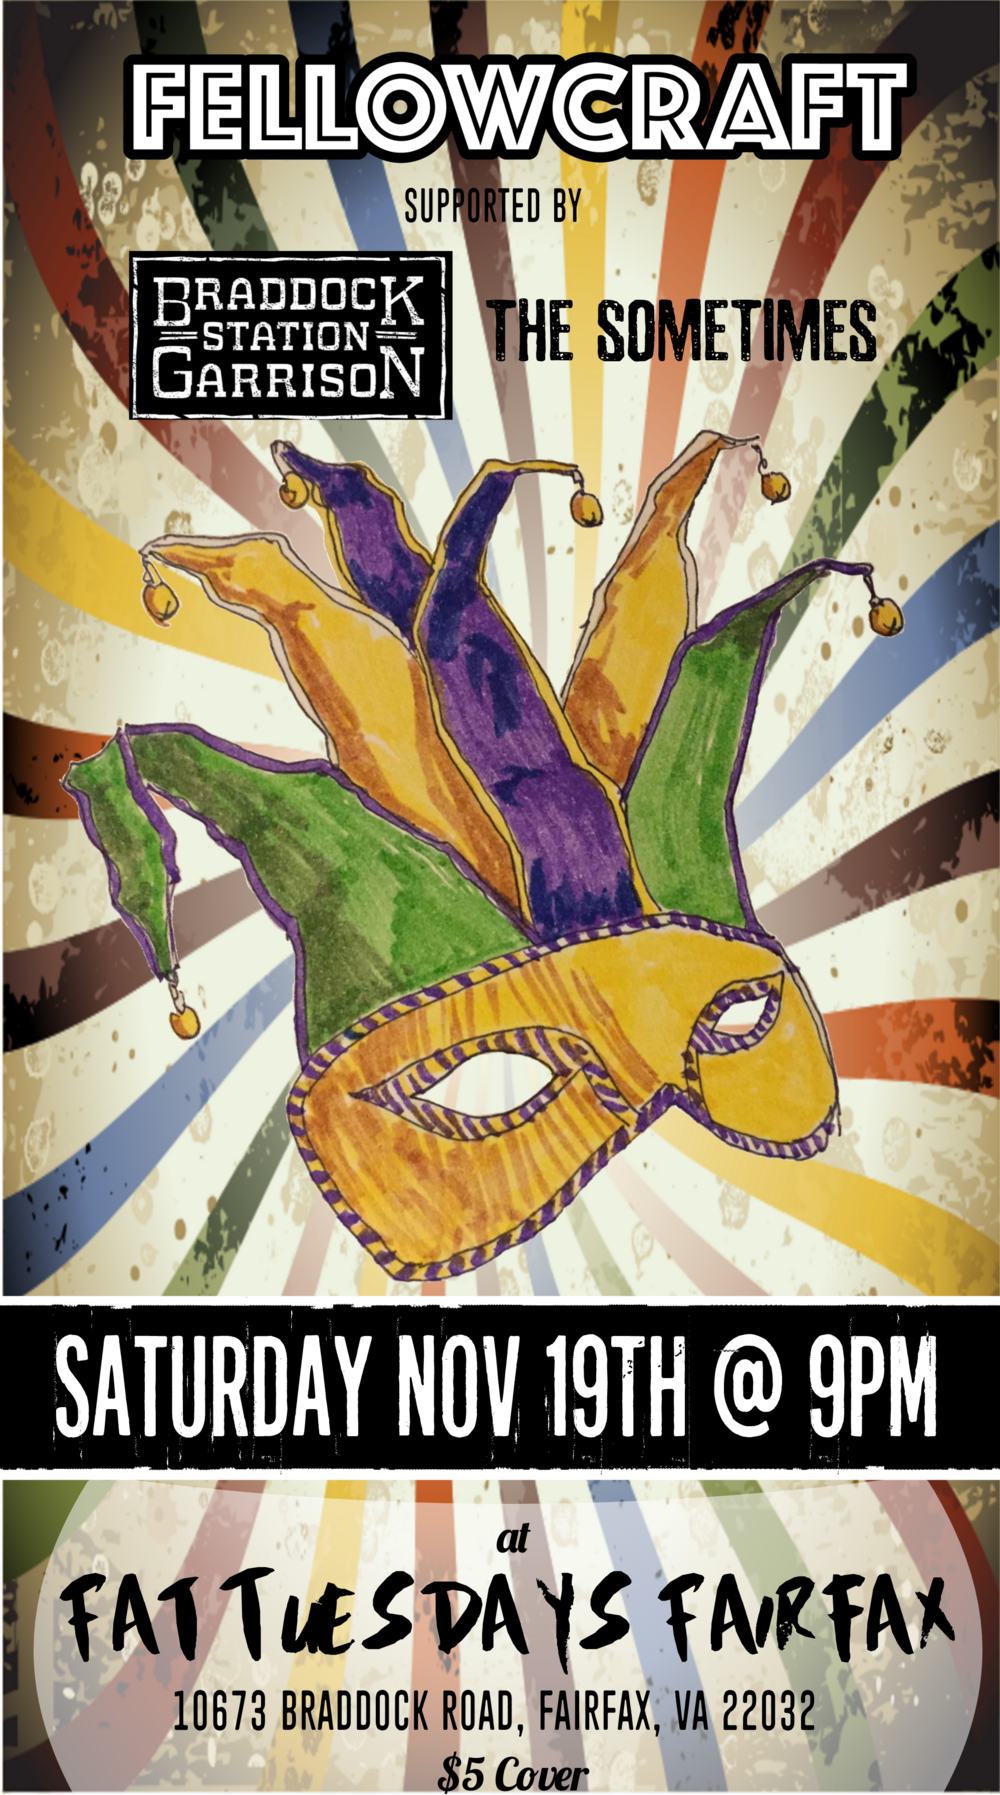 Saturday 11/19 is an original rock showcase!  Joined by friends The Sometimes and Braddock Station Garrison.